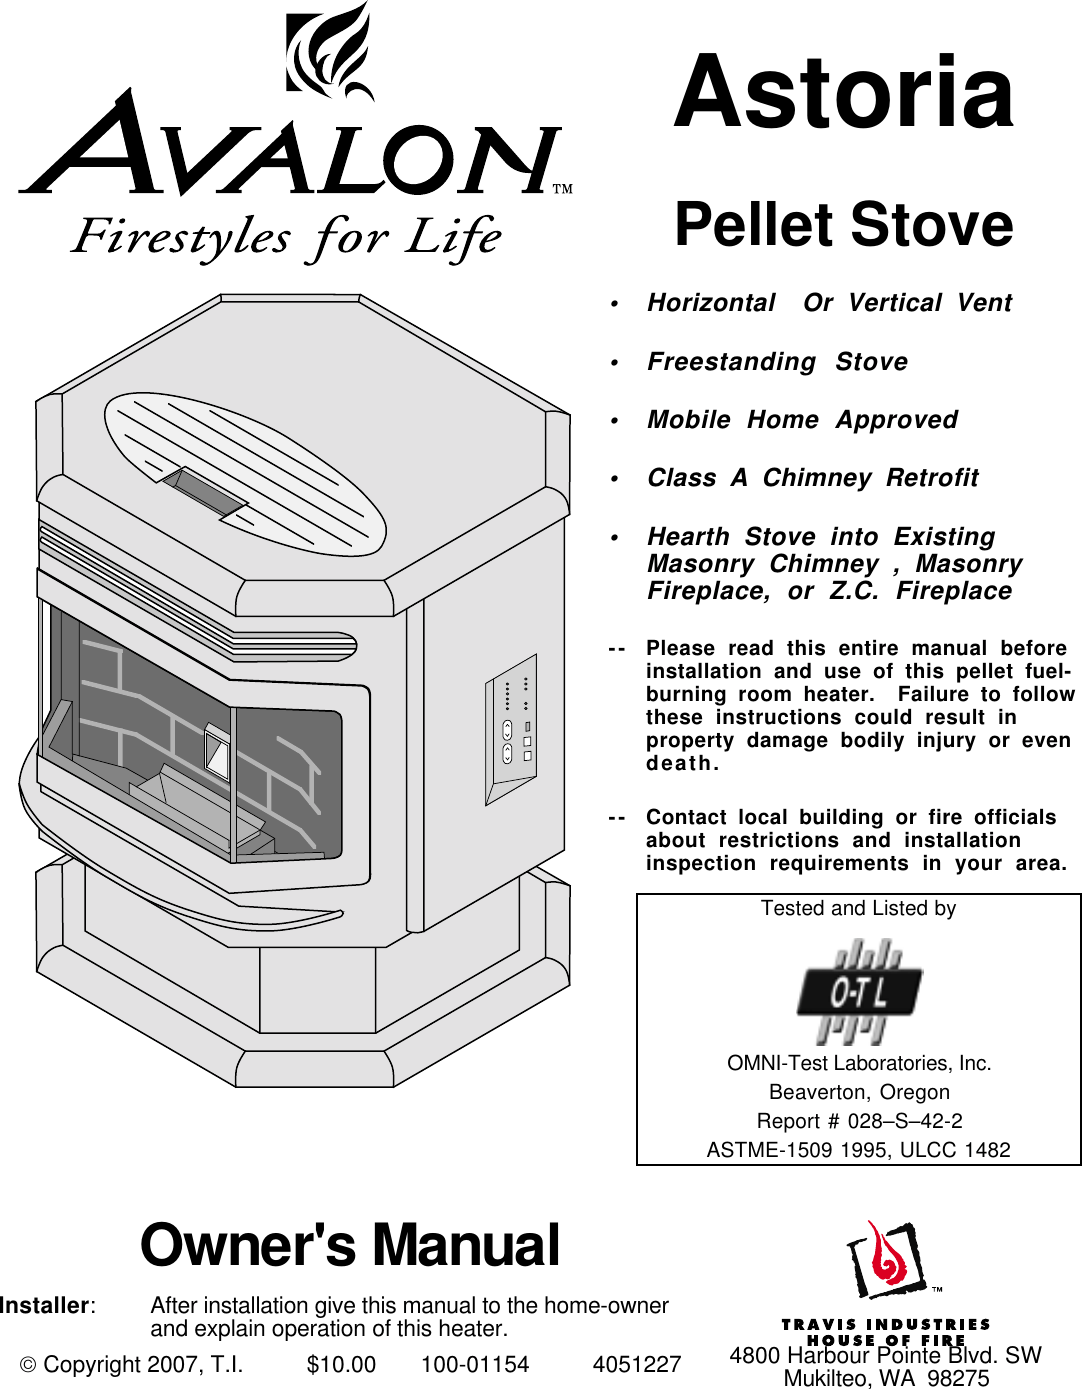 Avalon Stoves Pellet Stove Astoria Ps Users Manual